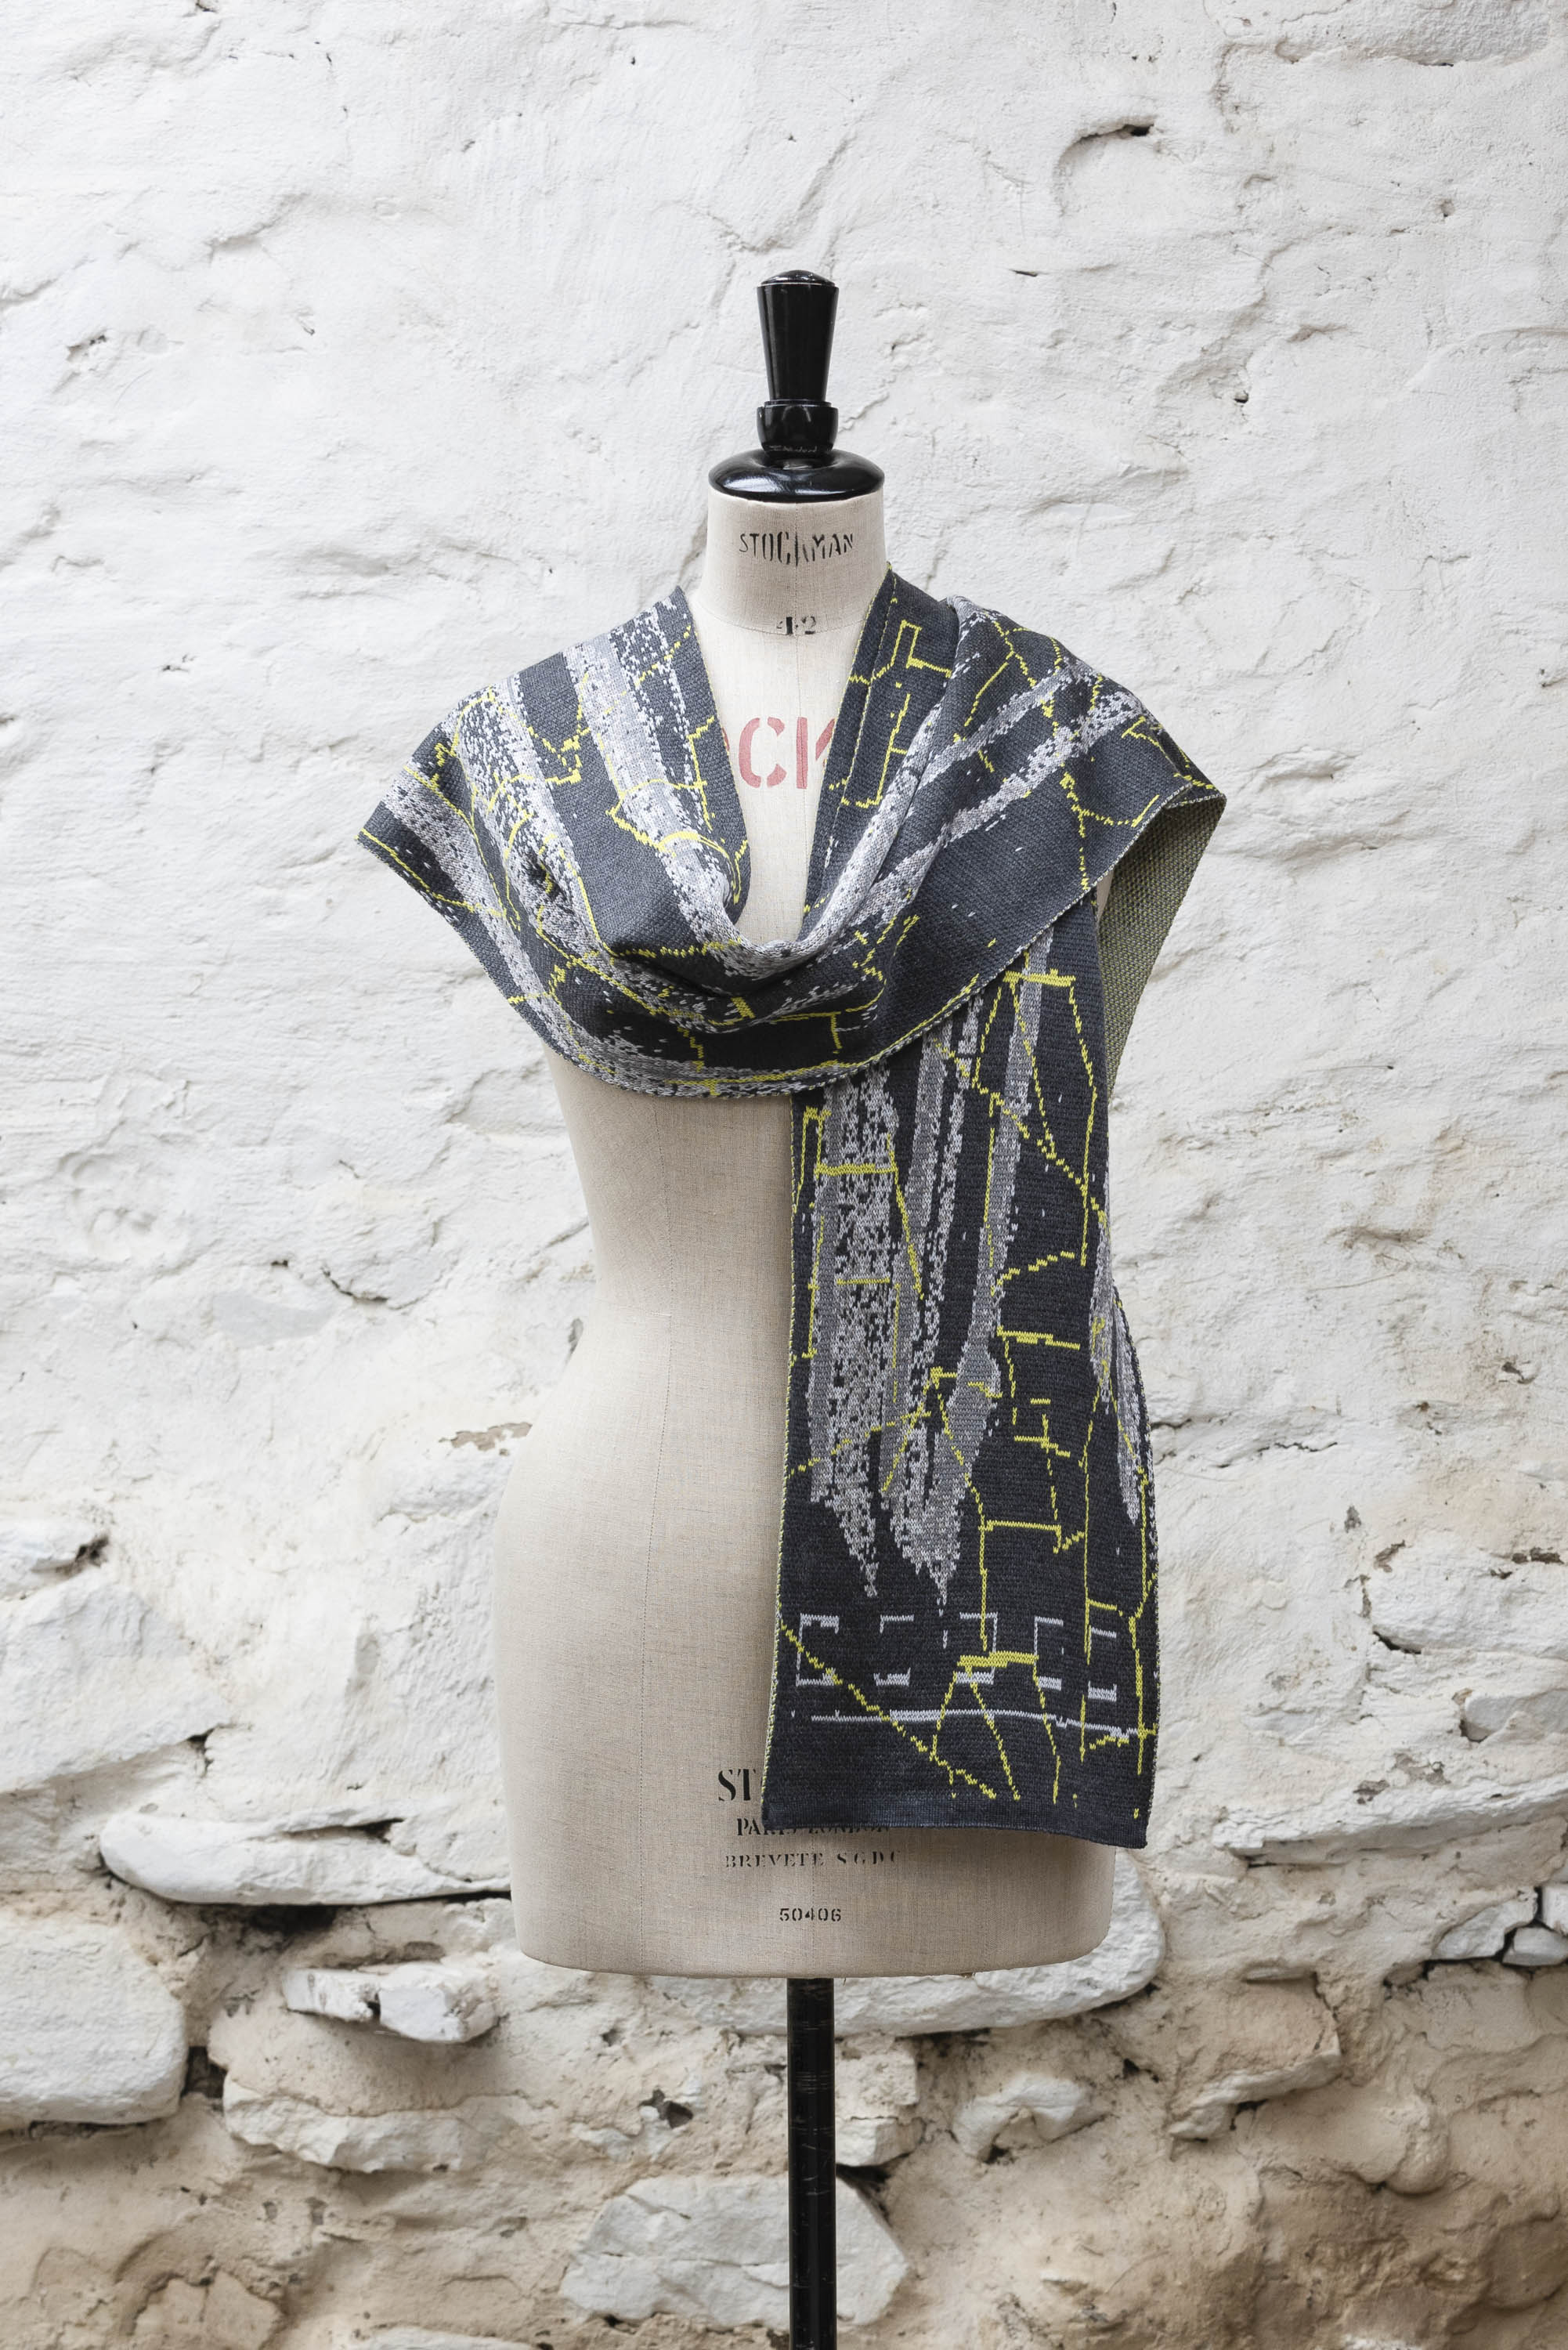 Contemporary Scottish knitted scarf with abstract pattern in greys with fluoro yellow highlights